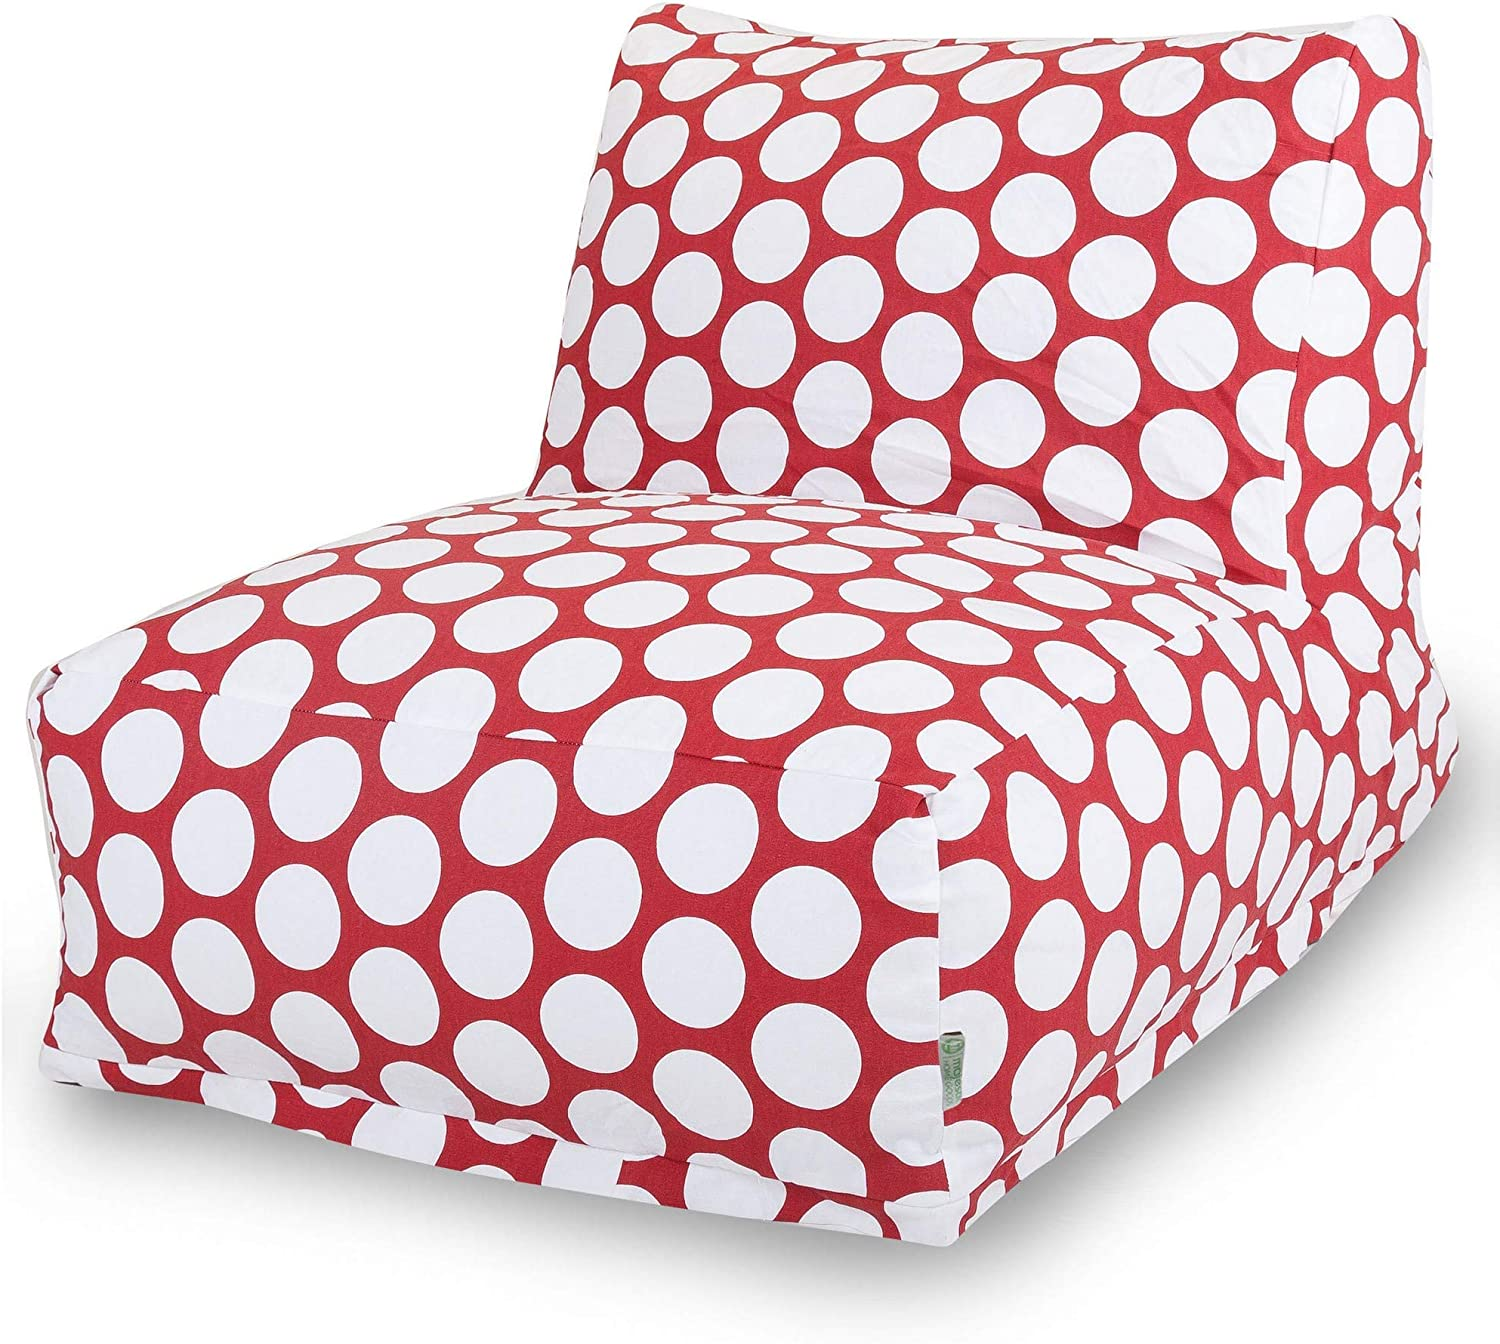 Majestic Home Goods Red Hot Large Polka Dot Bean Bag Chair Lounger